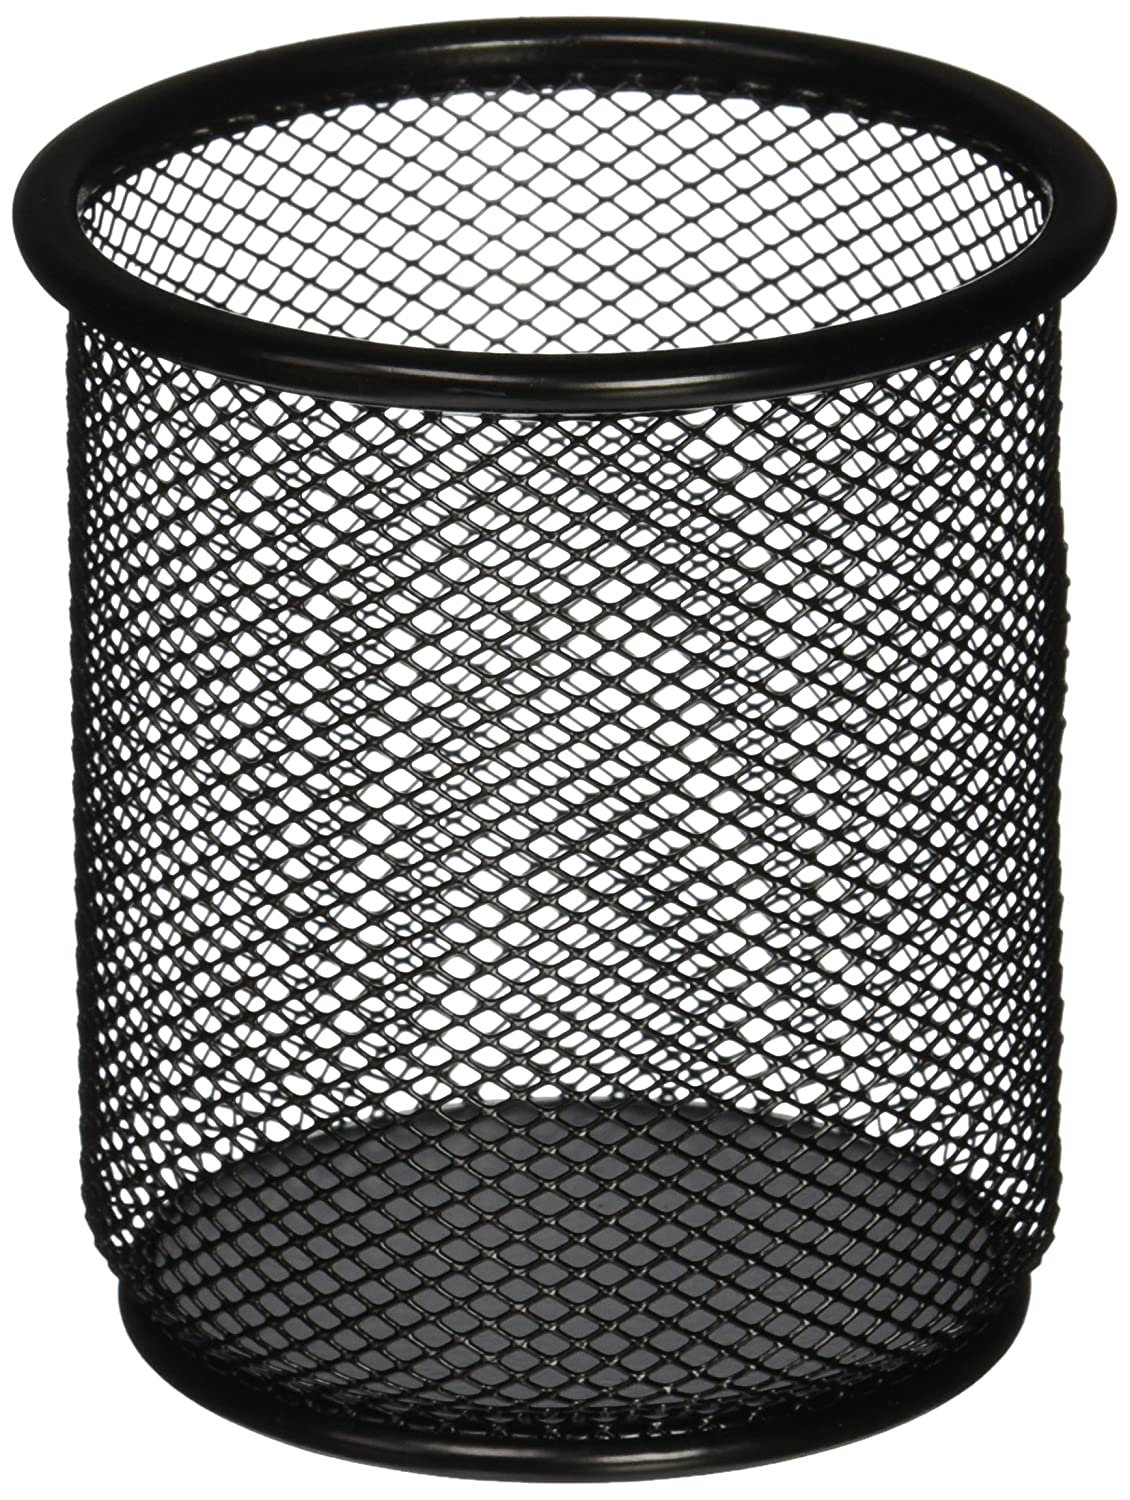 Amazon.com: Lorell LLR84149 Mesh Wire Pencil Cup Holder, Black: Home ...